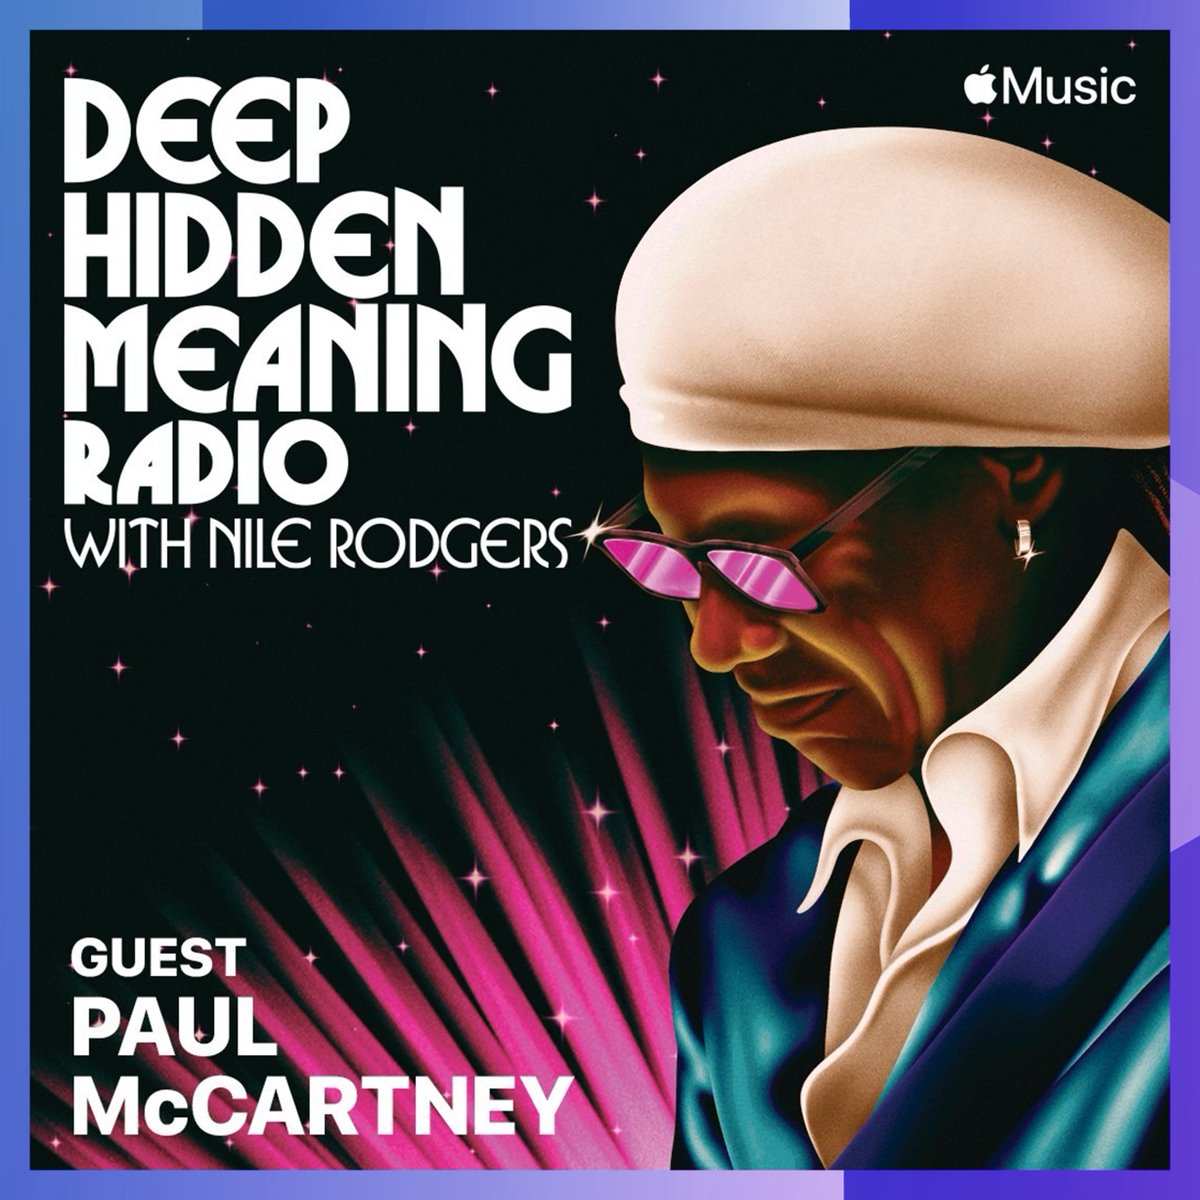 Sir @PaulMcCartney is the latest guest on our Chief Creative Advisor @NileRodgers' @AppleMusic 1's #DeepHiddenMeaning Radio, joining Nile for a fascinating masterclass discussion on songwriting. Listen back here: